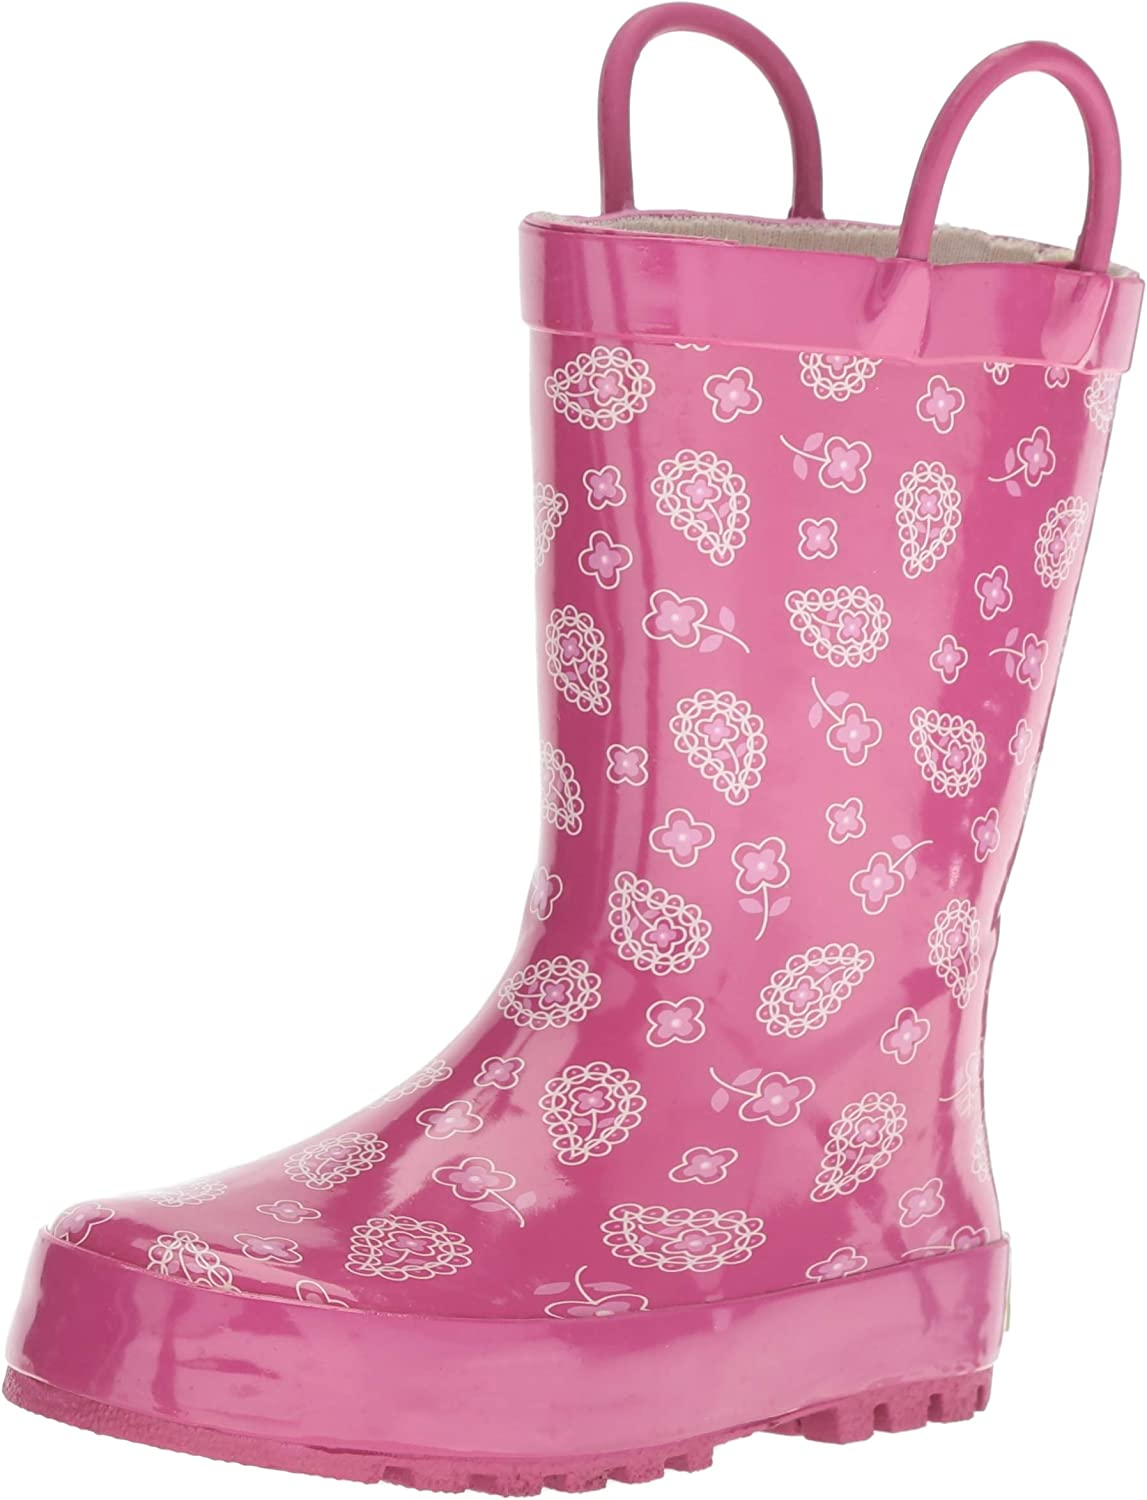 Western Chief Kids Waterproof Printed Rain Boot